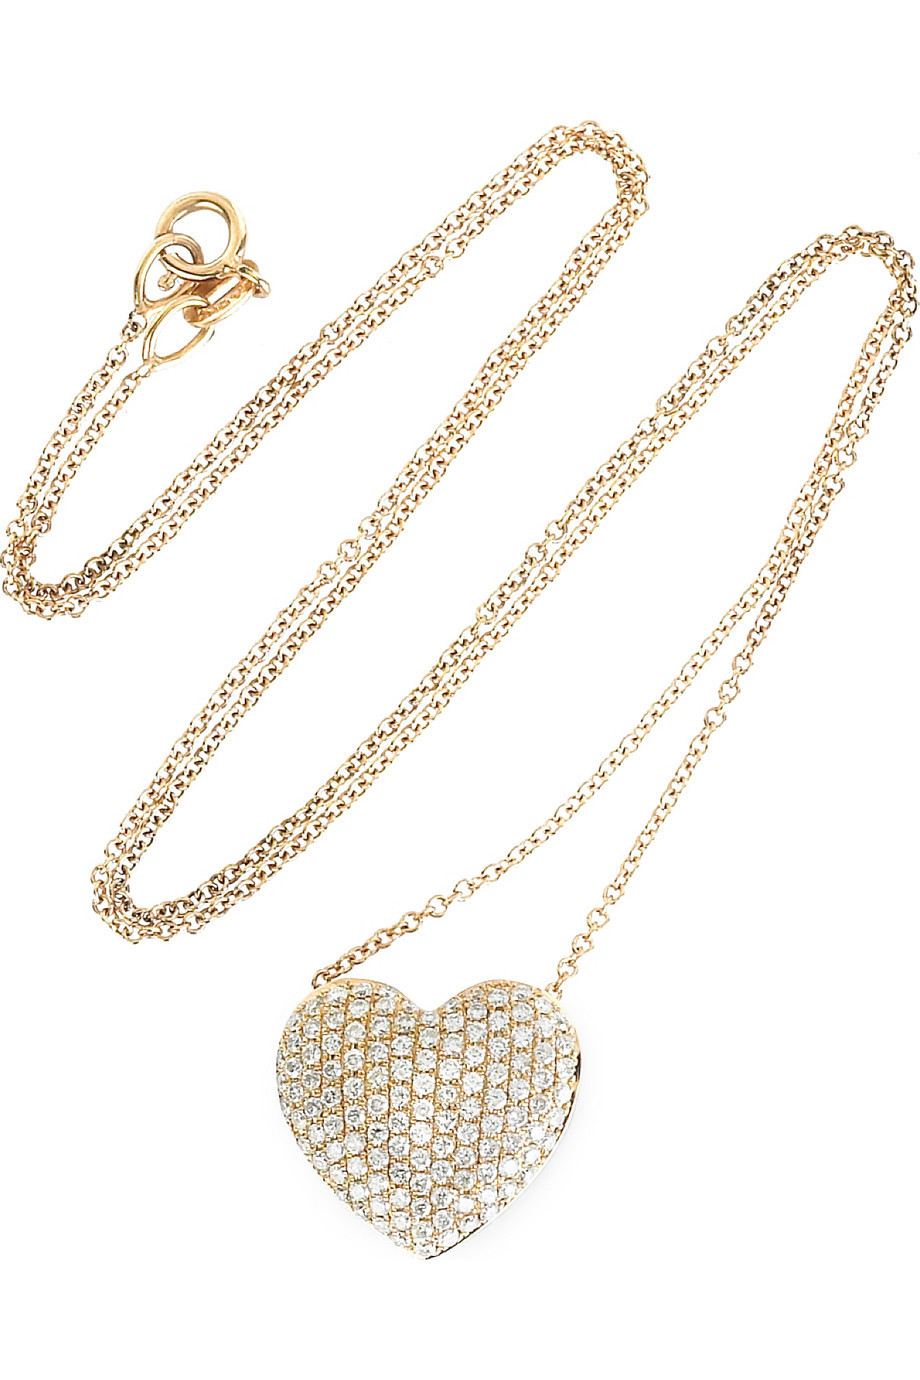 Anita Ko Diamond encrusted heart necklace | NET-A-PORTER.COM